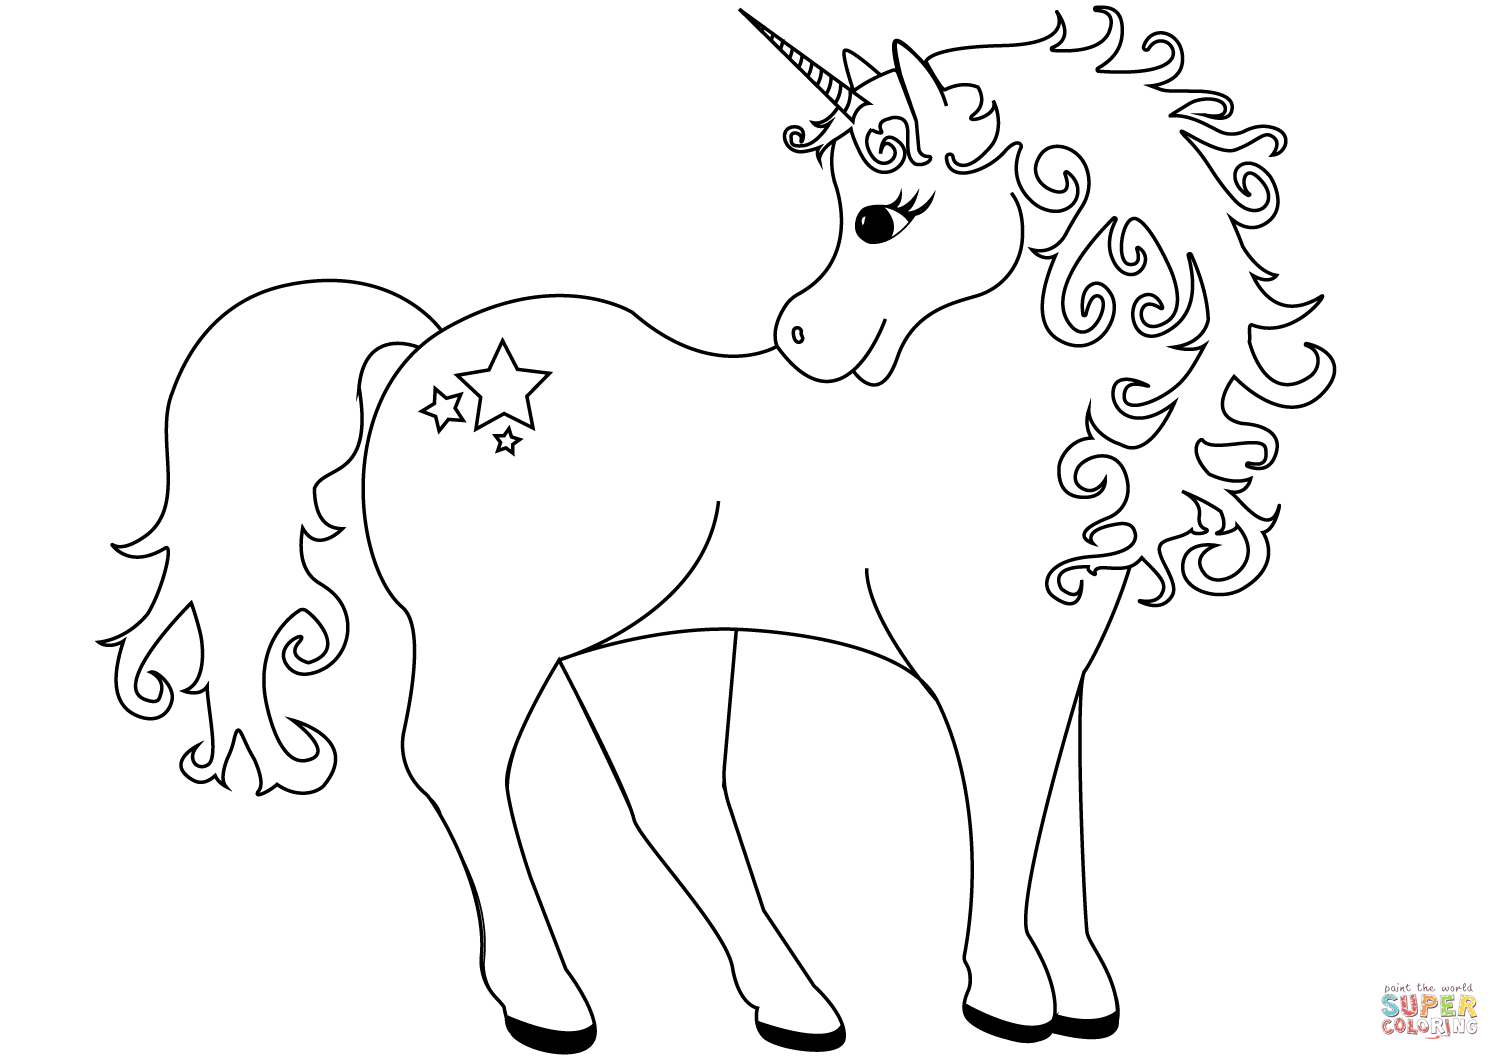 coloring for unicorn unicorn coloring pages printable learning printable for coloring unicorn